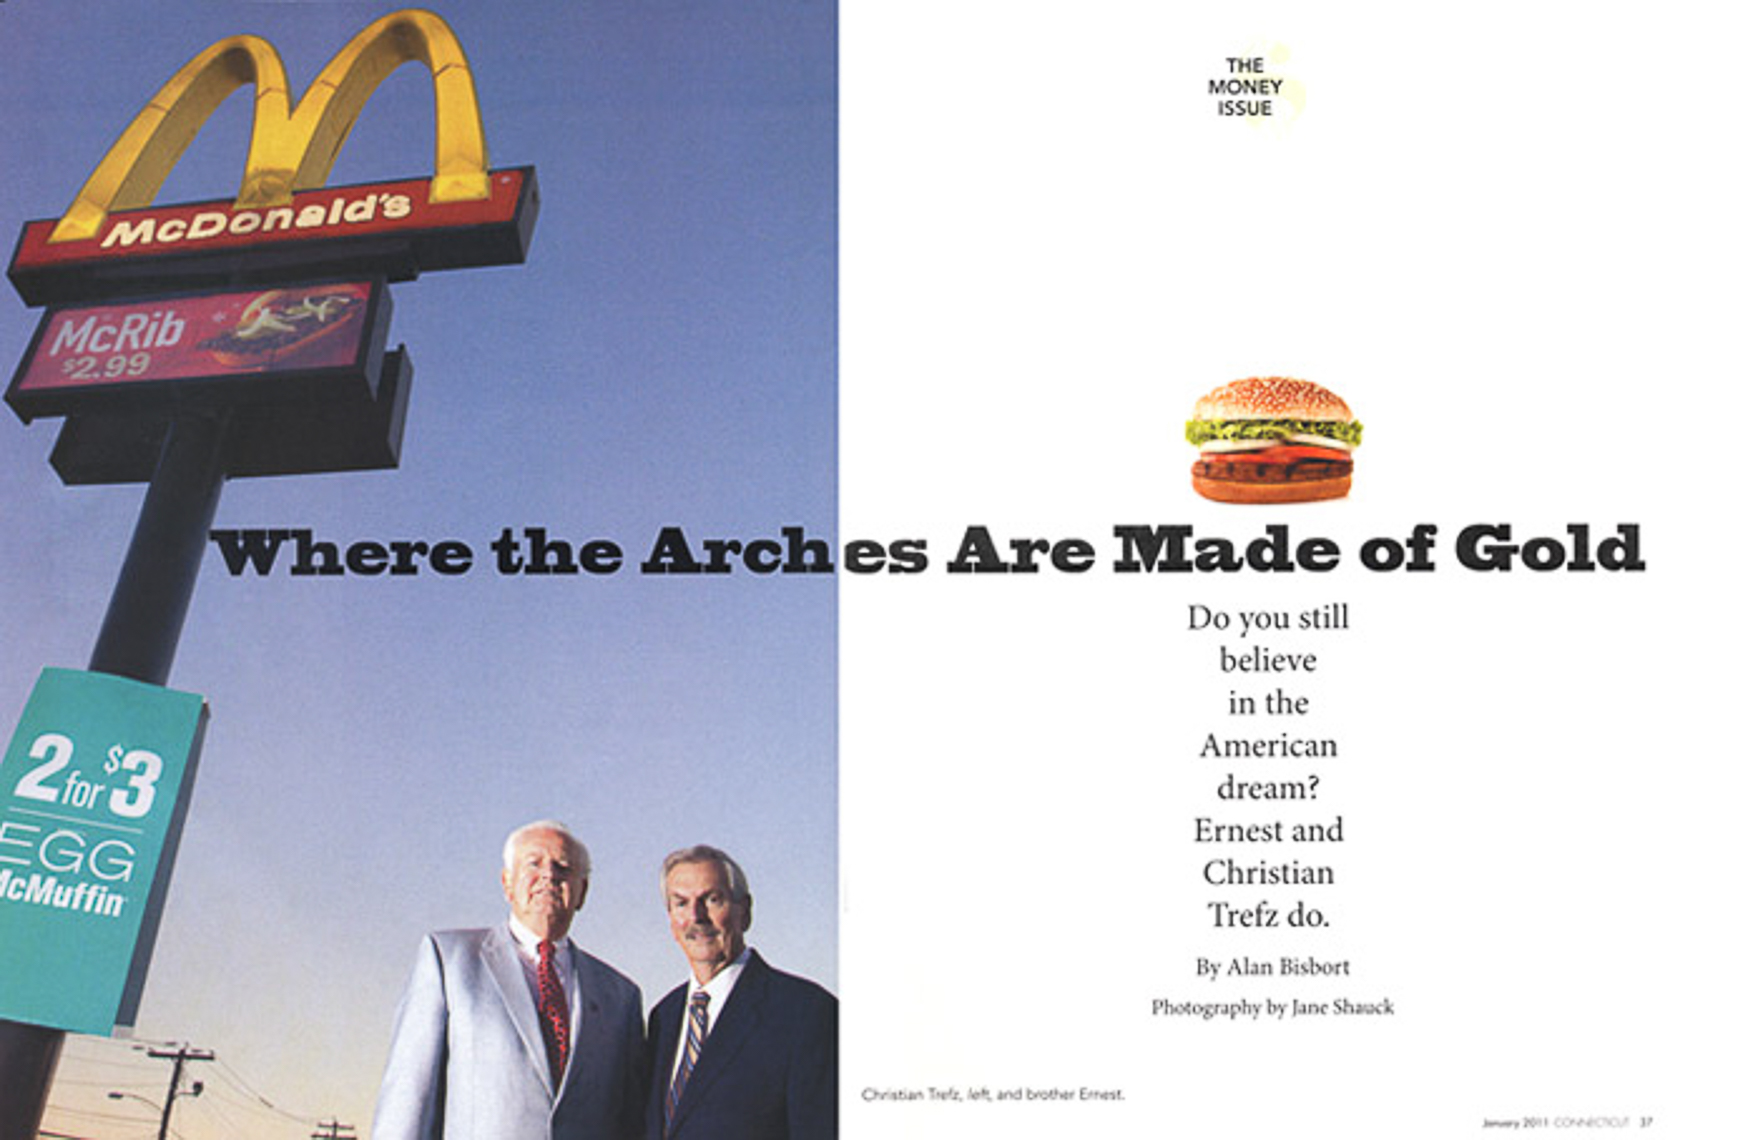 0048_0001_ernest_christian_trefz_mcdonalds_franchise_owners_ceo_hartford_ct_advertising_editorial_corporate_business_photographer_photojane